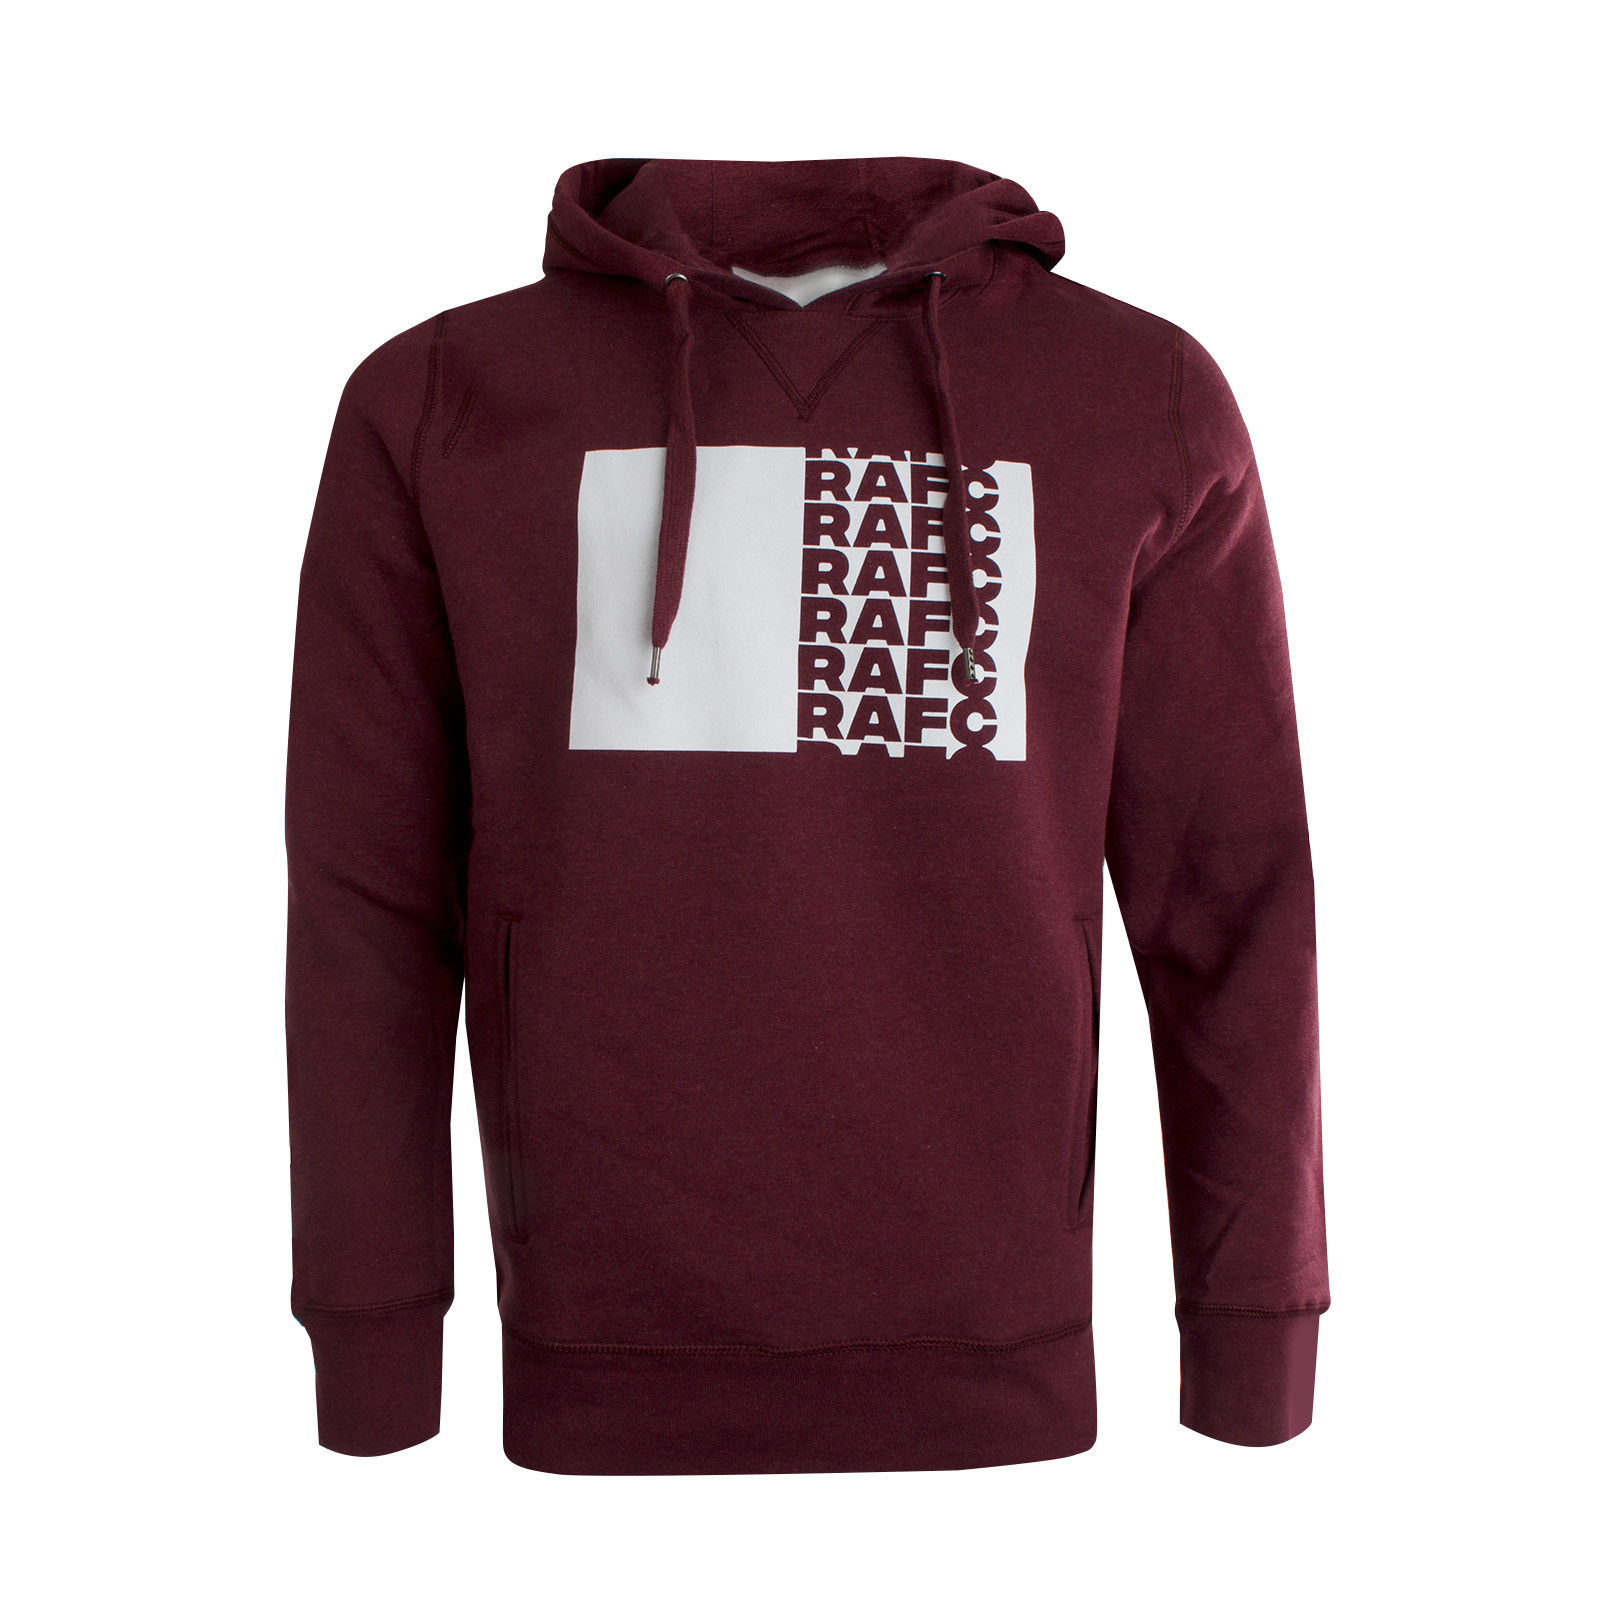 RAFC Hoodie Wine Heather-1